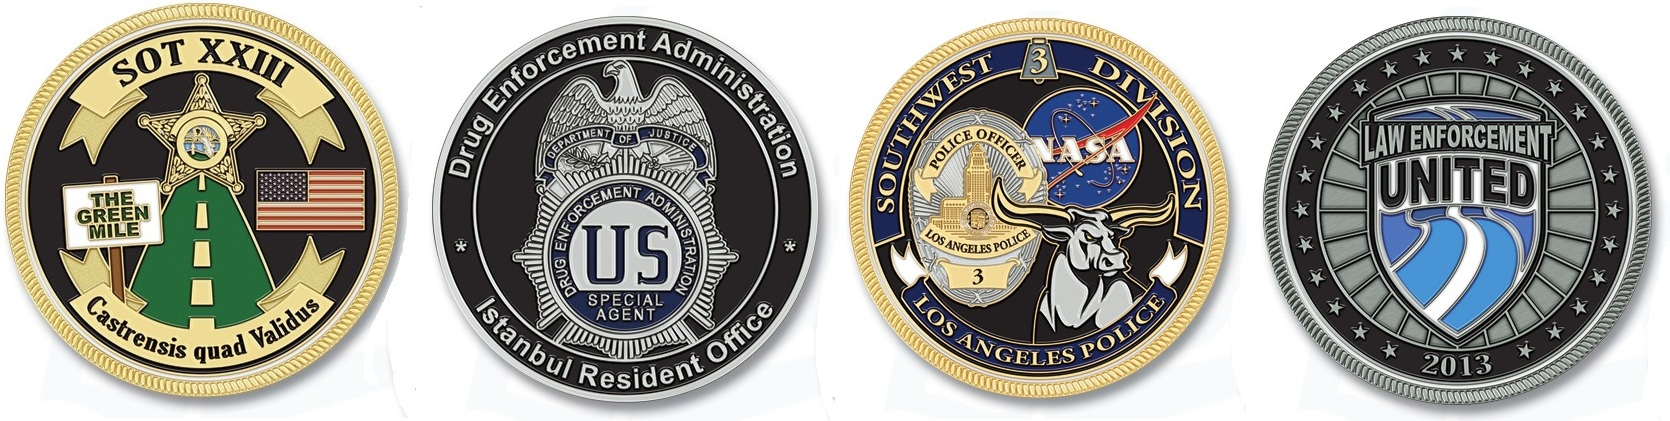 Custom Police Law Enforcement Challenge Coins Free Shipping